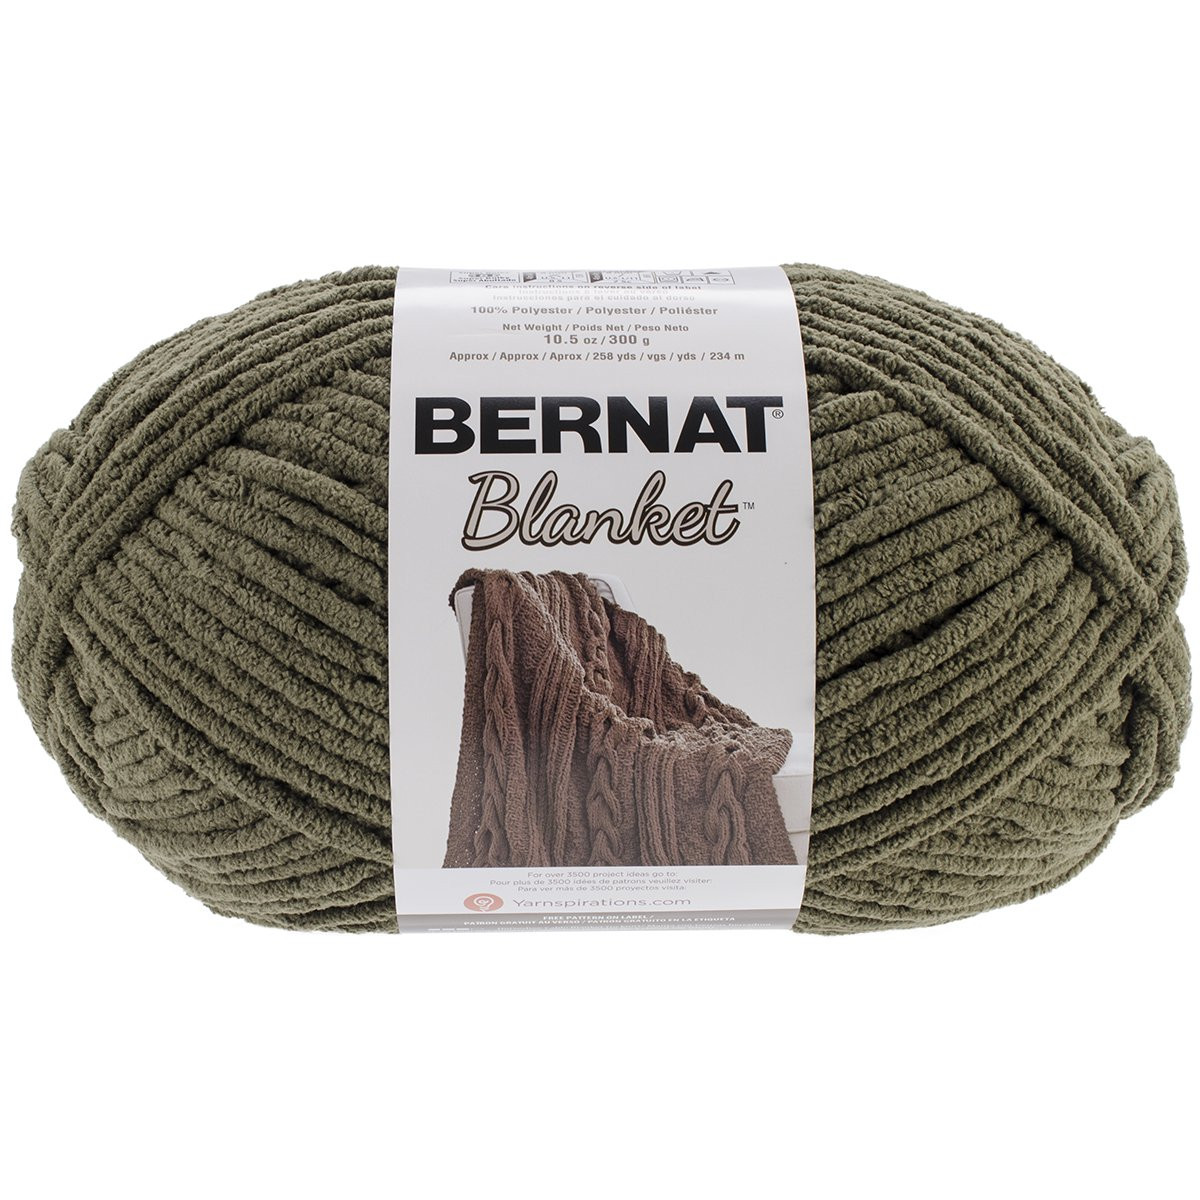 Bernat Chunky Yarn Big Ball Inspirational Spinrite Bernat Blanket Big Ball Yarn Of Top 43 Pictures Bernat Chunky Yarn Big Ball